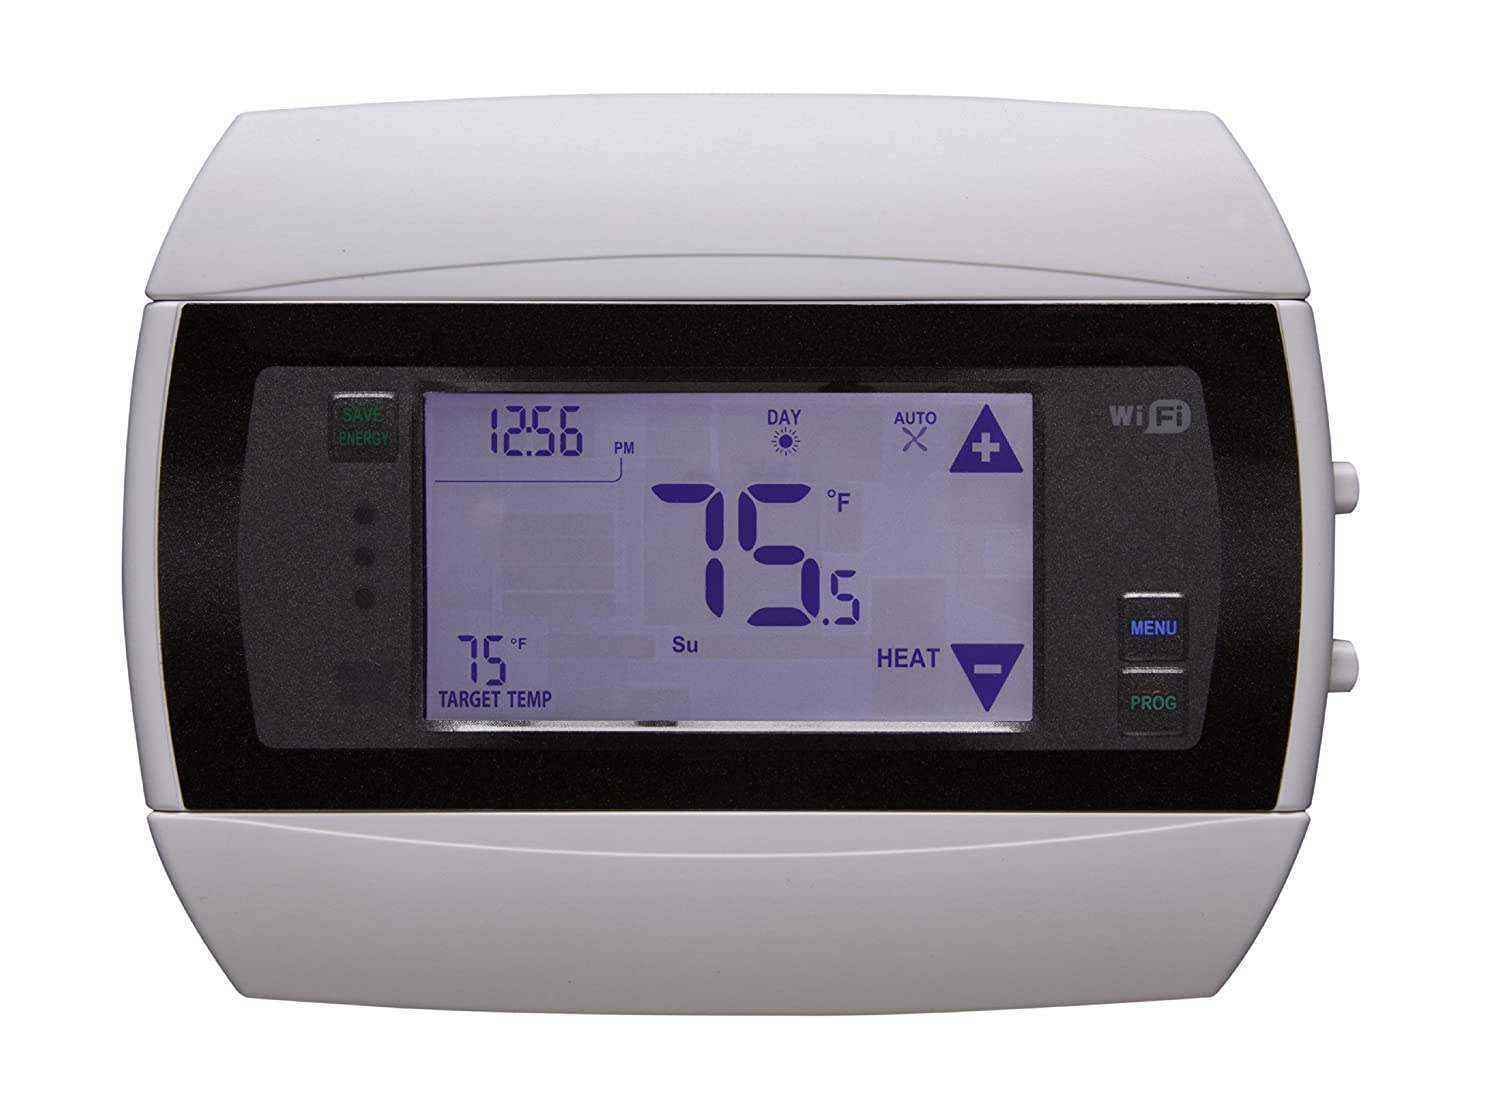 Radio Thermostat CT80 7-Day Programmable Thermostat (WiFi Enabled), iOS & Android App Controls - - Amazon.com